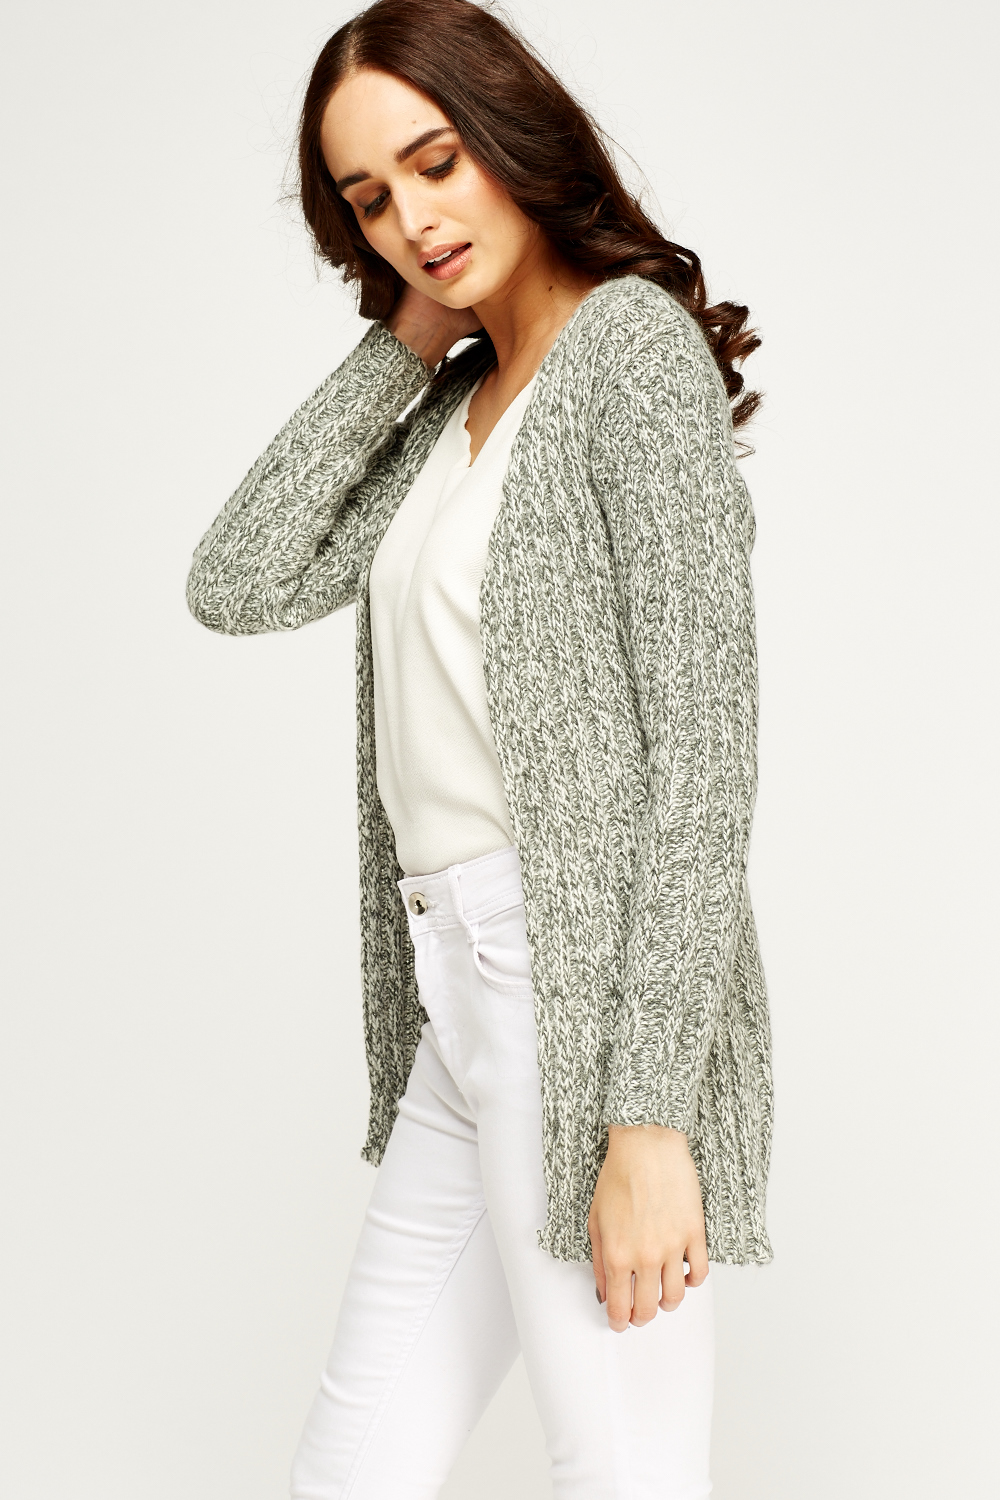 Knitting Pattern Open Front Cardigan : Speckled Knit Open Front Cardigan - Just ?5